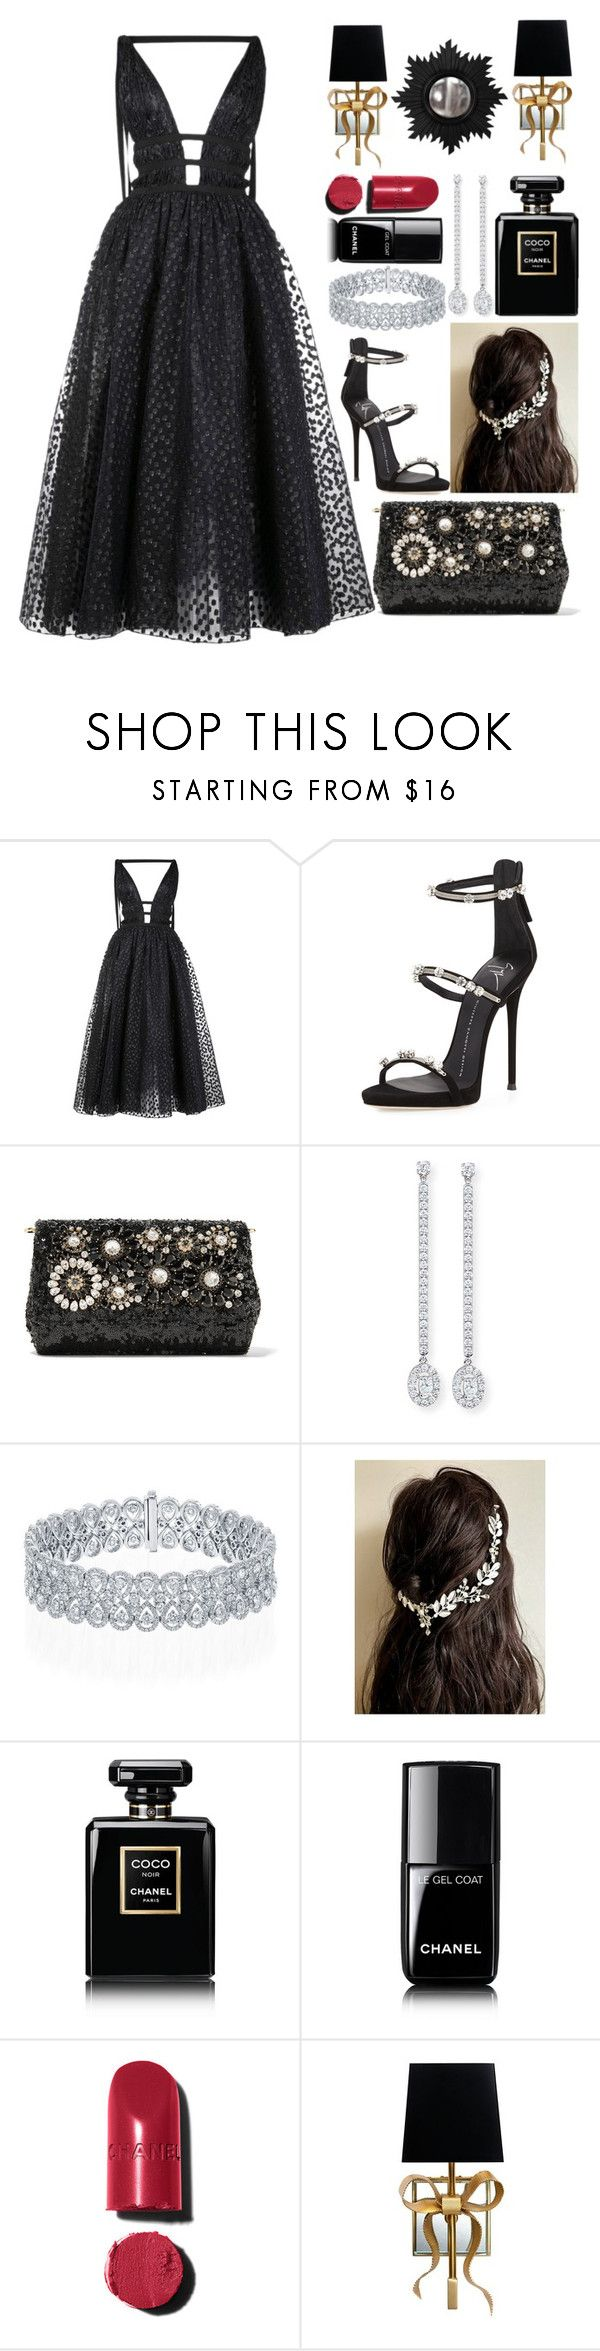 """Graduation Day🎓"" by pulseofthematter ❤ liked on Polyvore featuring Carolina Herrera, Giuseppe Zanotti, Dolce&Gabbana, Messika, Chanel, Kate Spade and Home Decorators Collection"